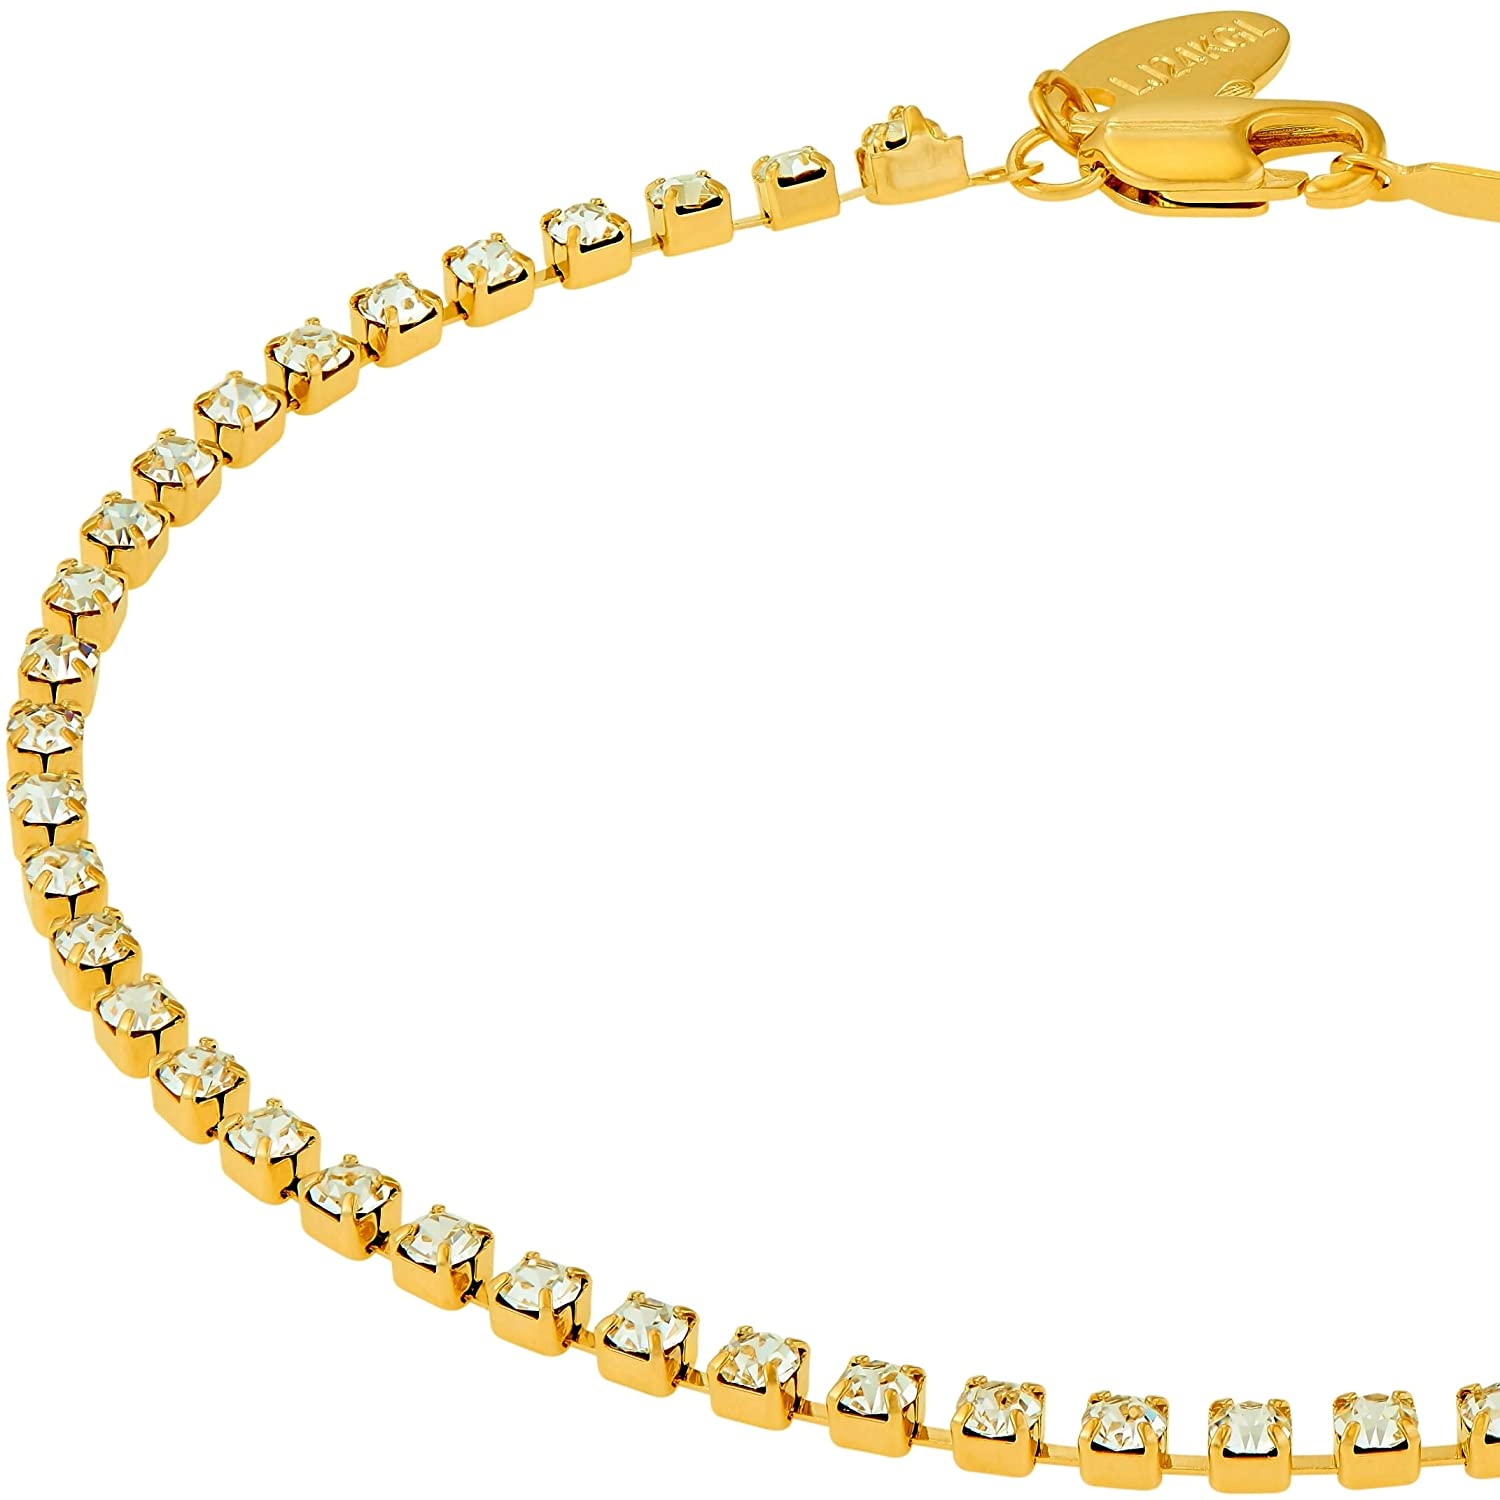 Lifetime Jewelry Ankle Bracelet 24k Gold Plated Iced Out Cubic Zirconia Anklet Durable Tennis Bracelet for Women Teen Girls – Cute CZ Charm with Free Lifetime Replacement Guarantee 9 10 11 inch